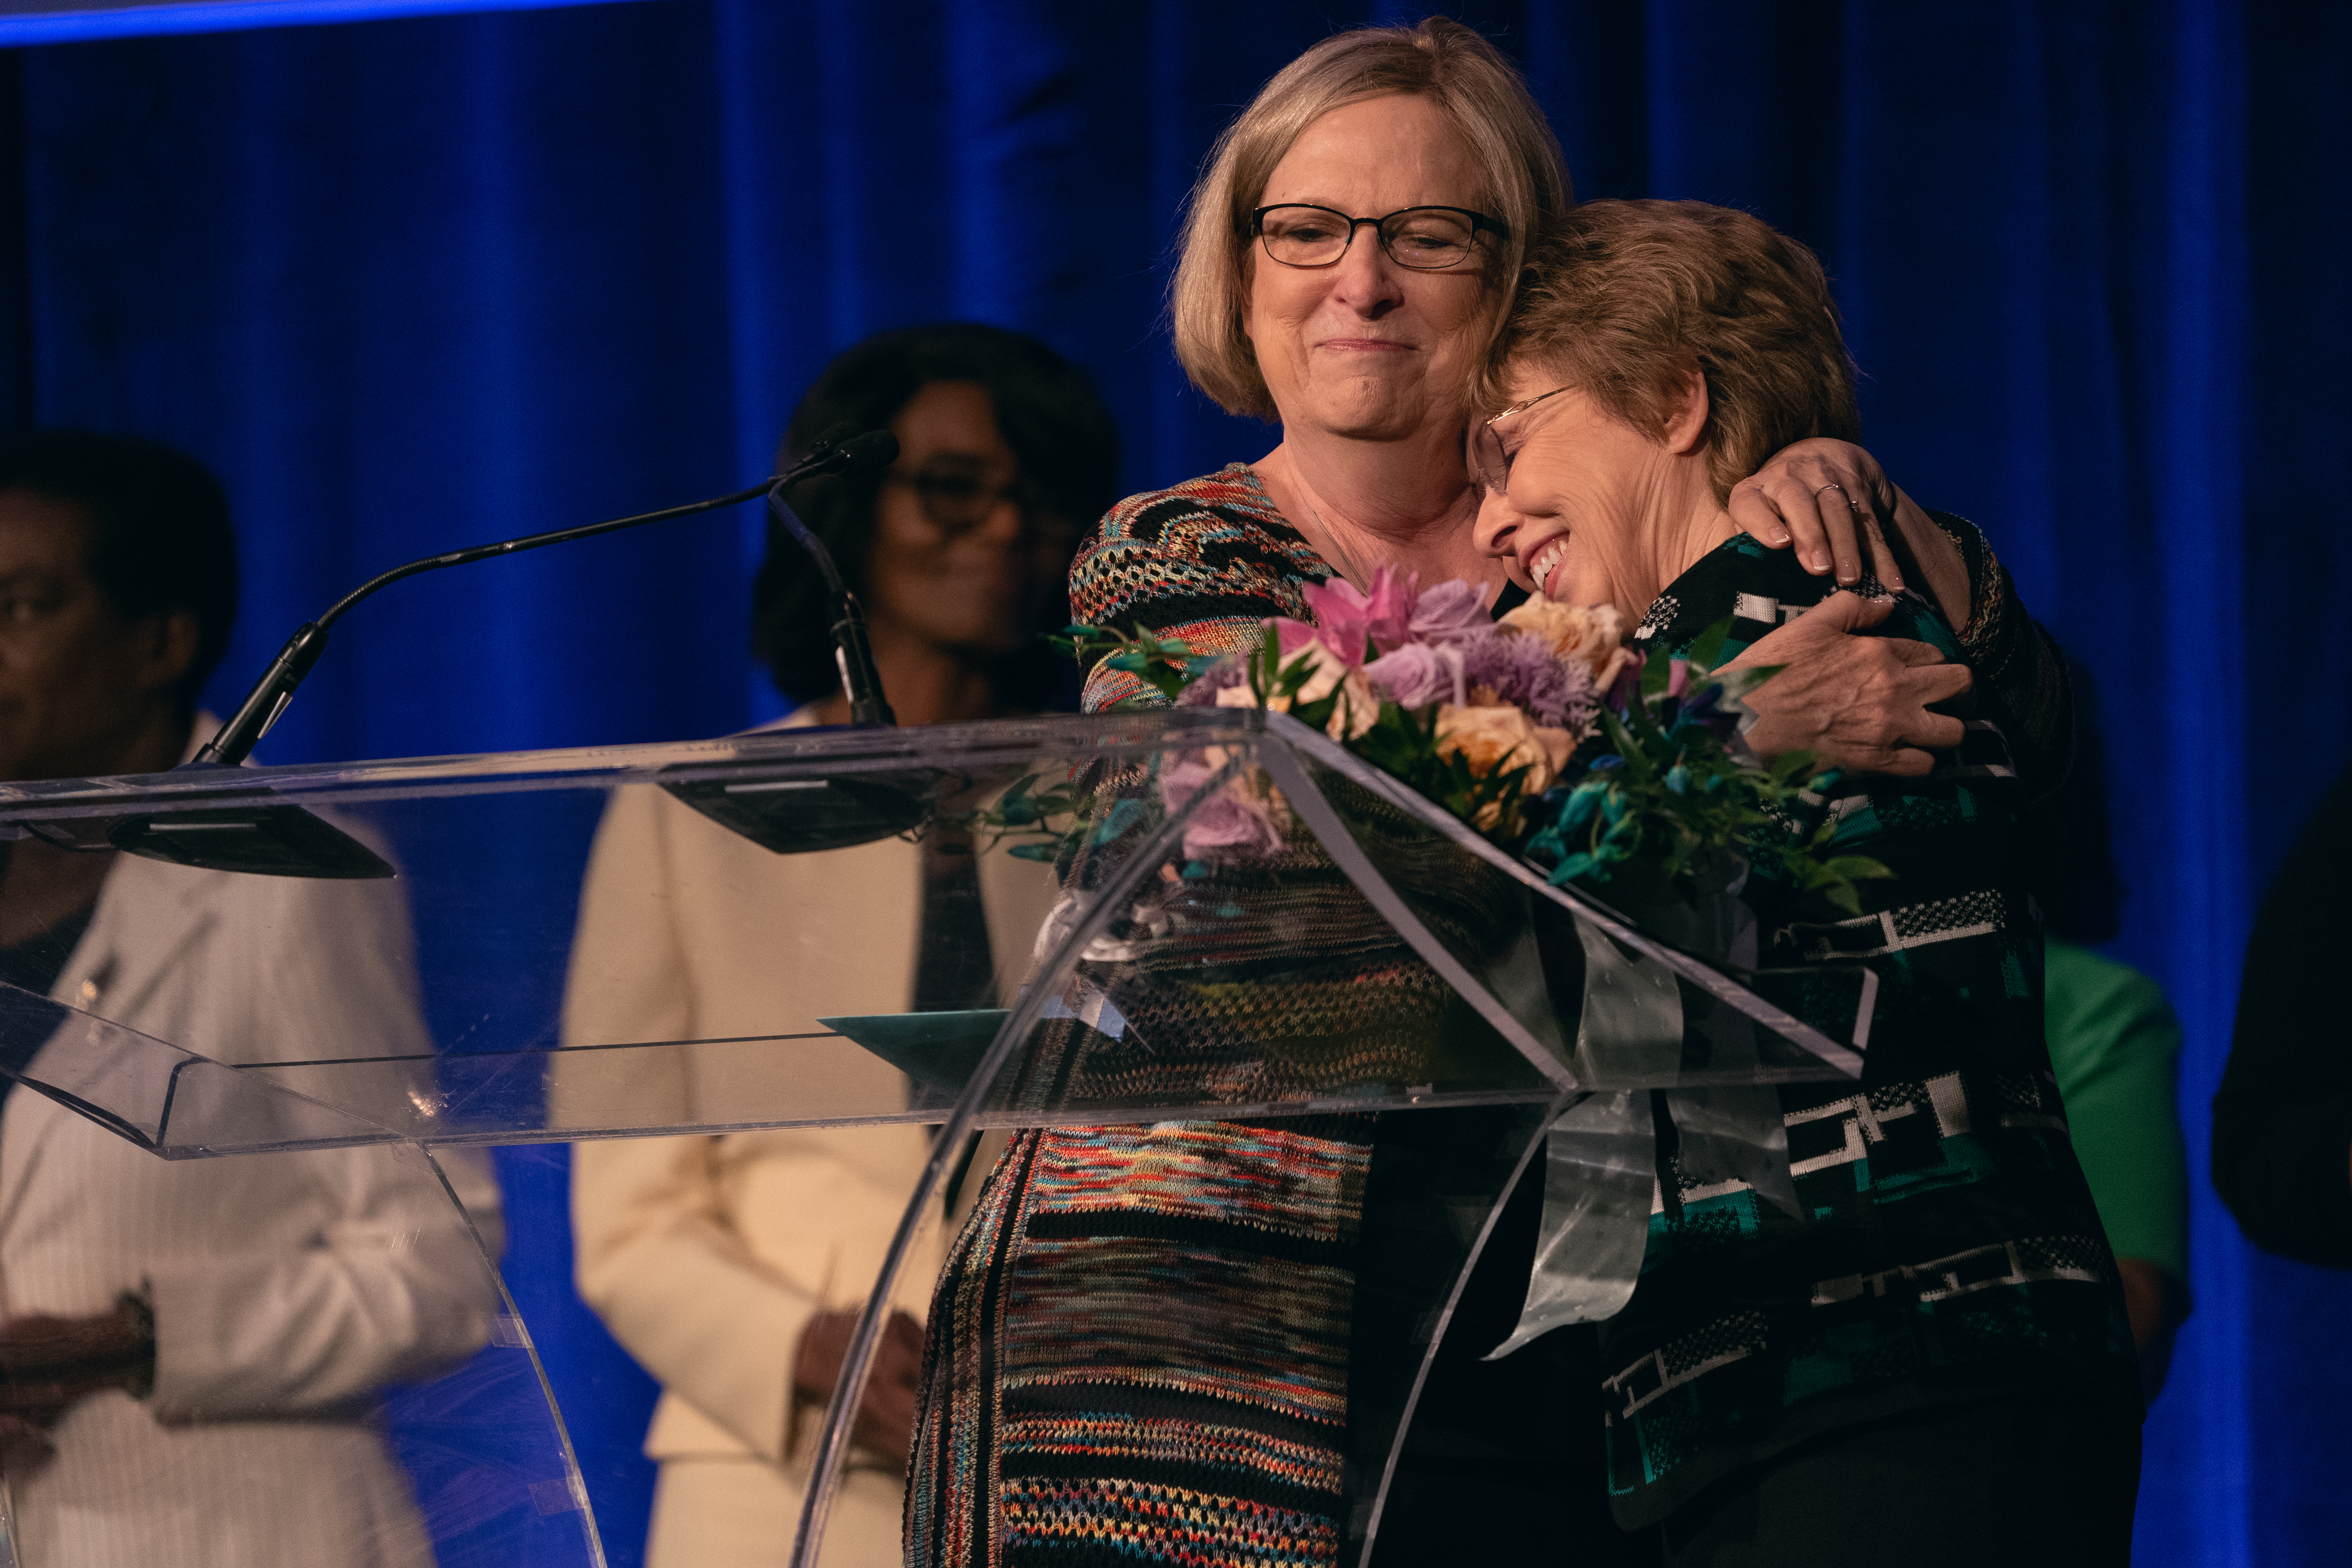 Nancy Buxton, director of Women's Ministries for the Mid-America Union, embraces Carla Baker, director of Women's Ministries for the North American Division, during the surprise farewell ceremony. Baker has served NAD for 14 years.